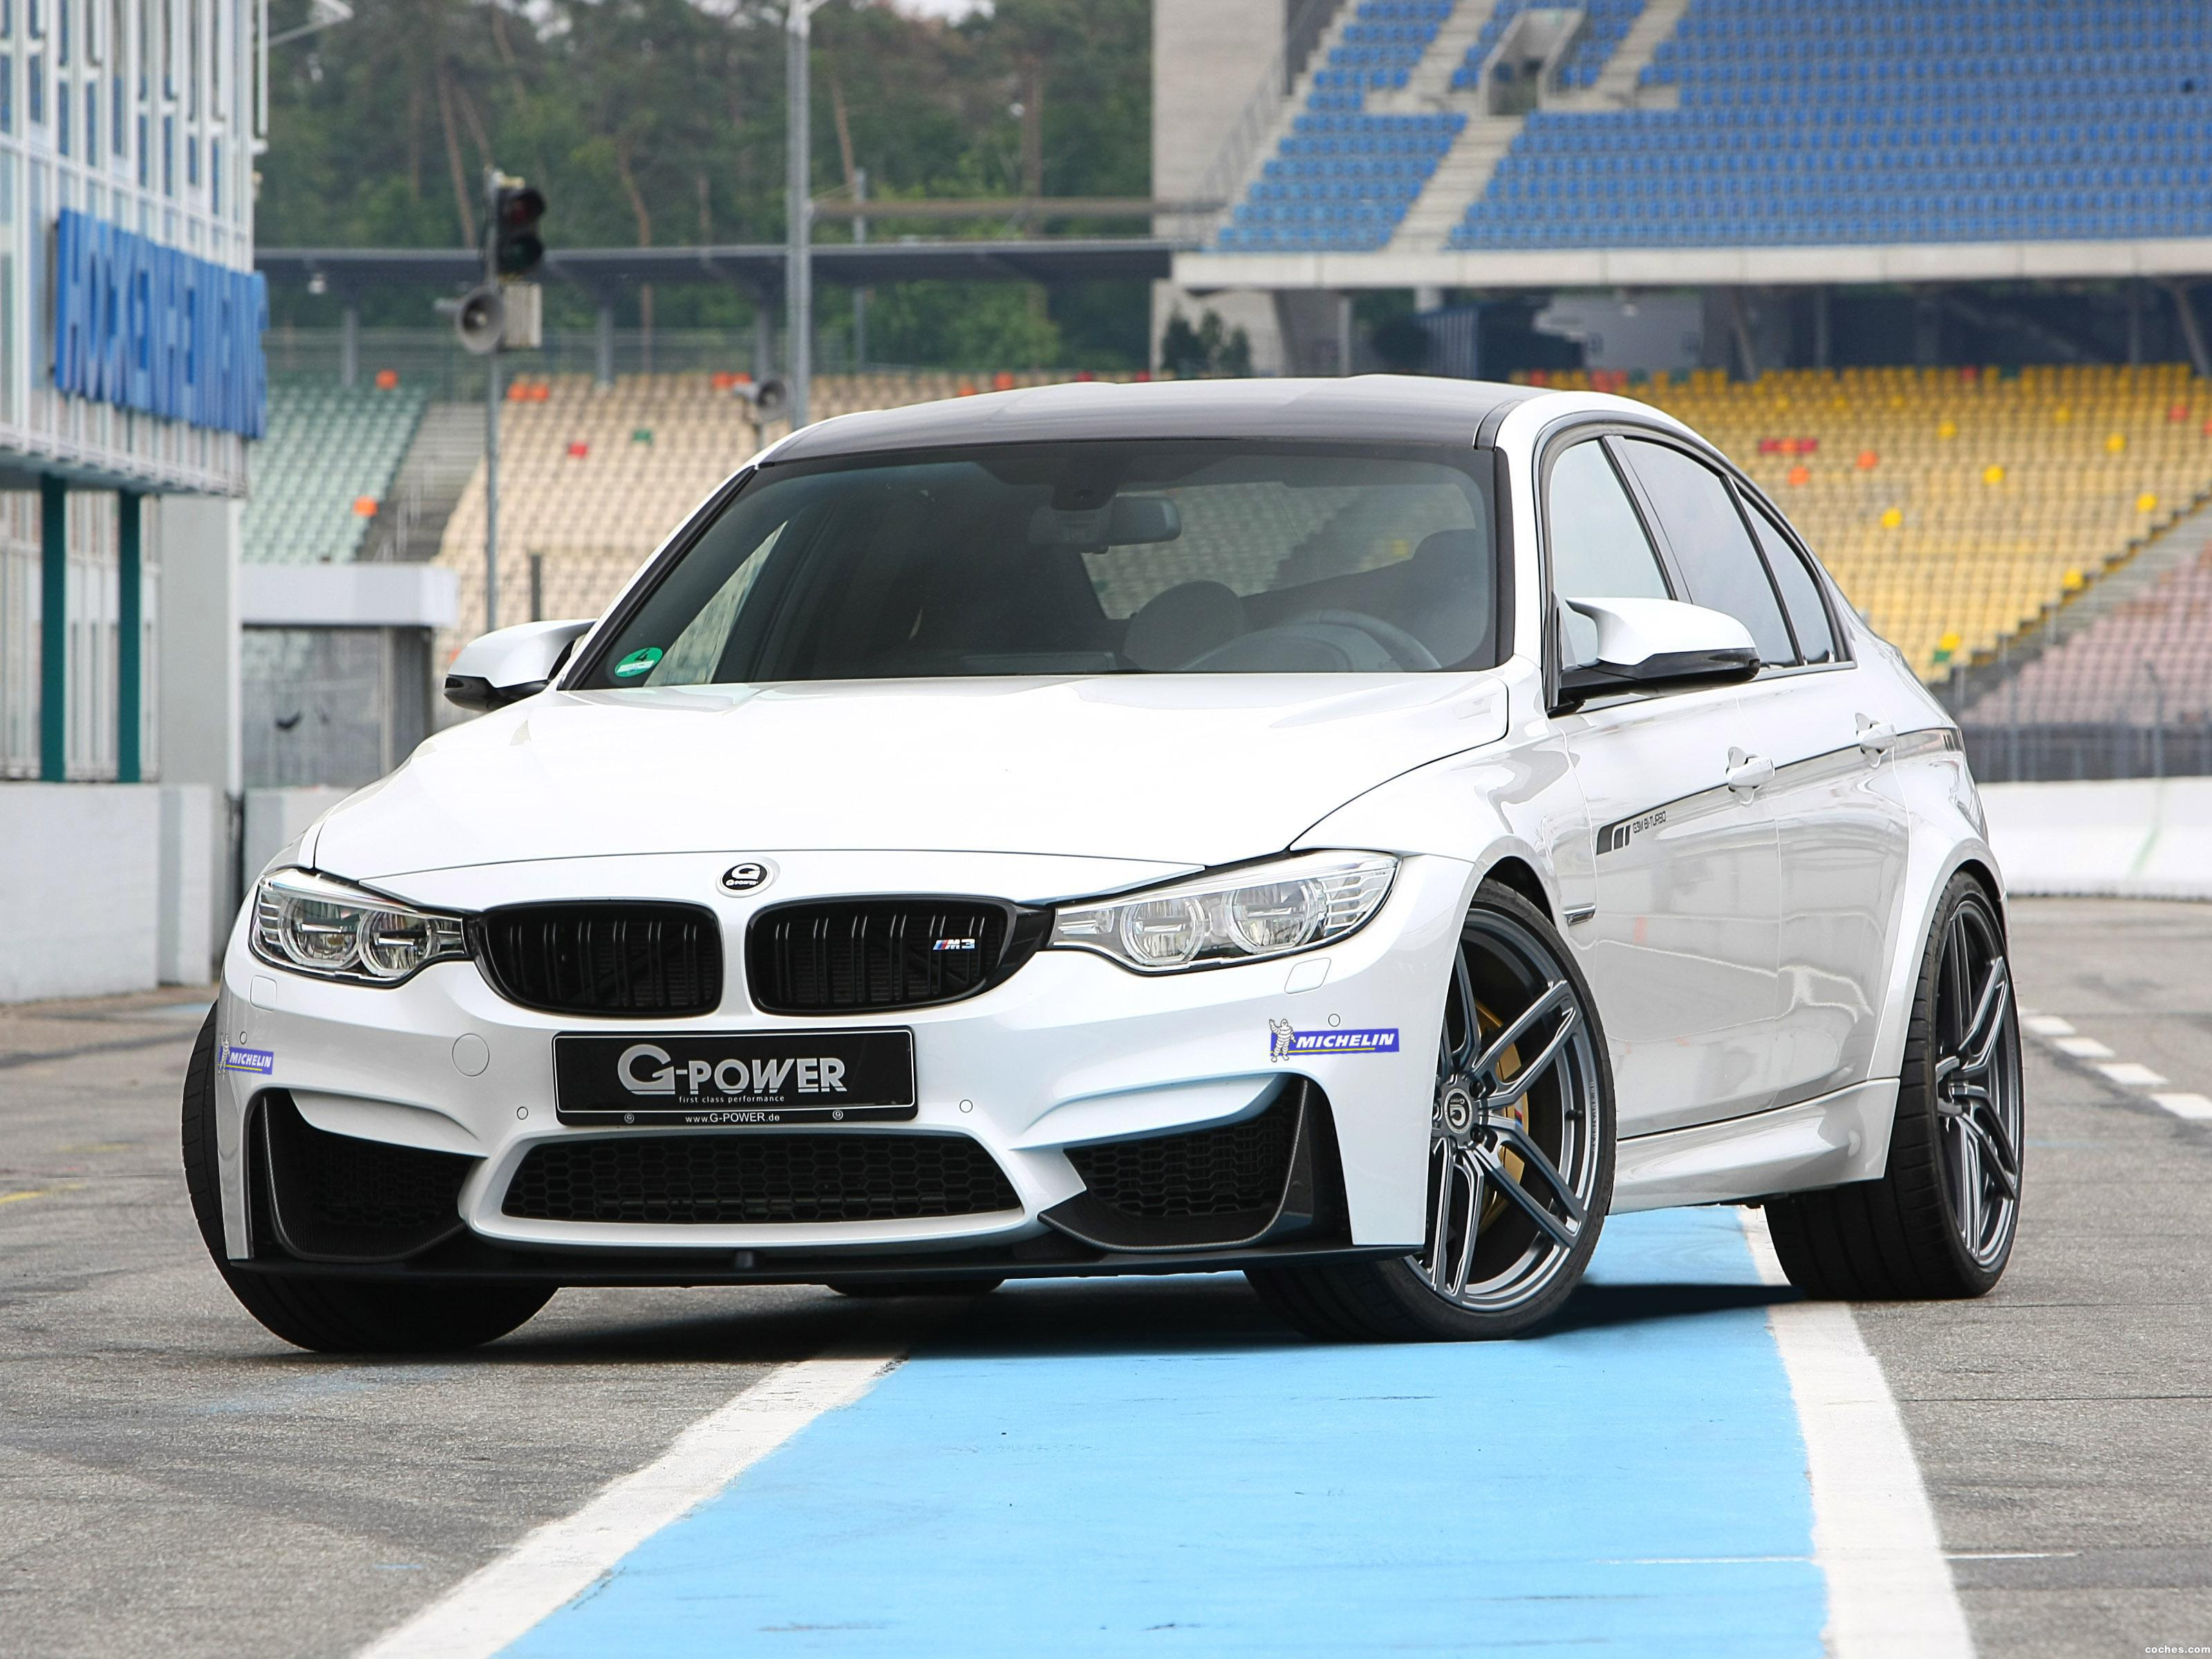 Foto 0 de G-power BMW M3 F30 2015